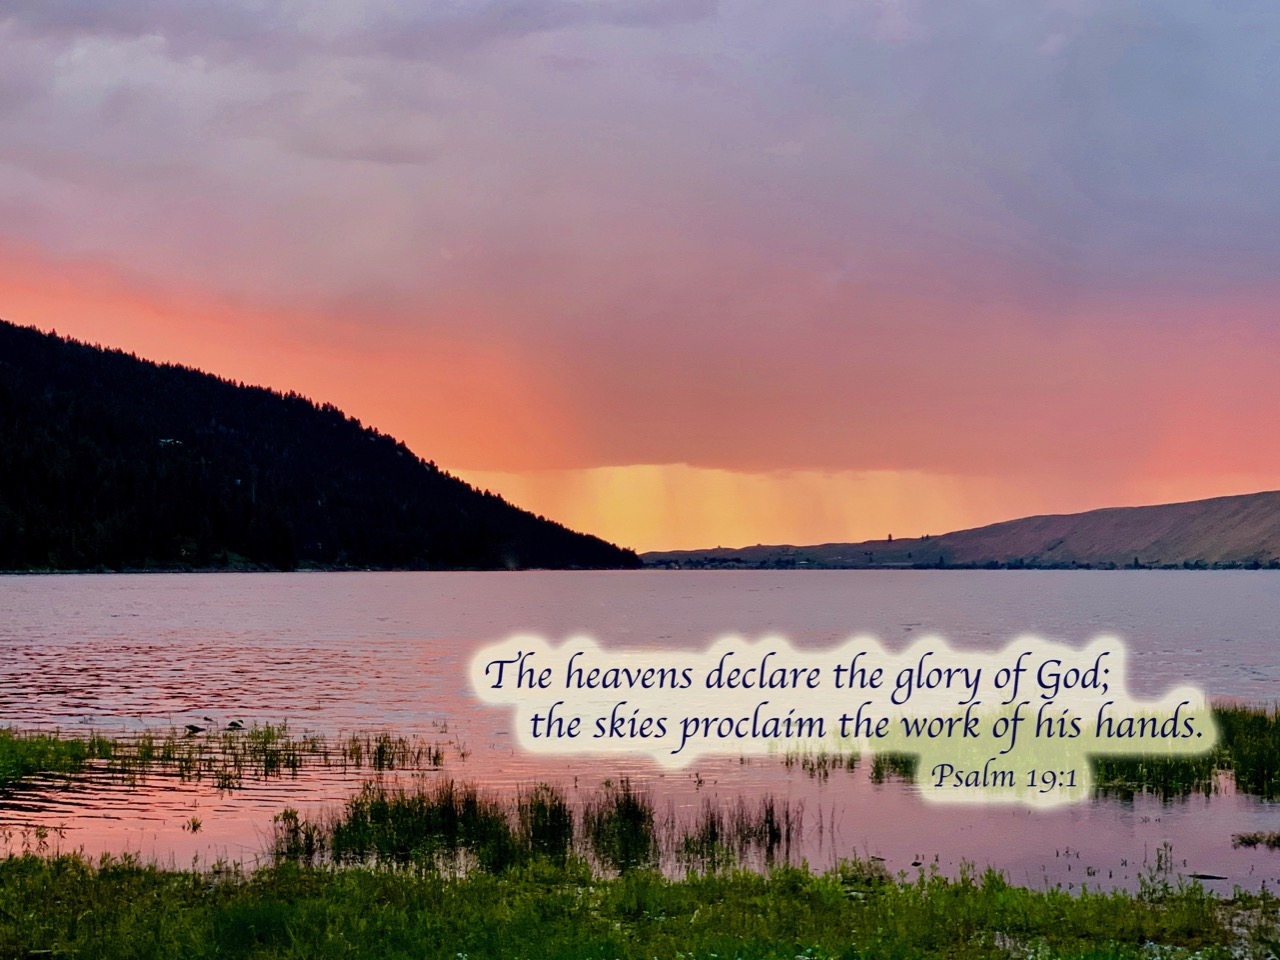 Wallowa lake psalm 19